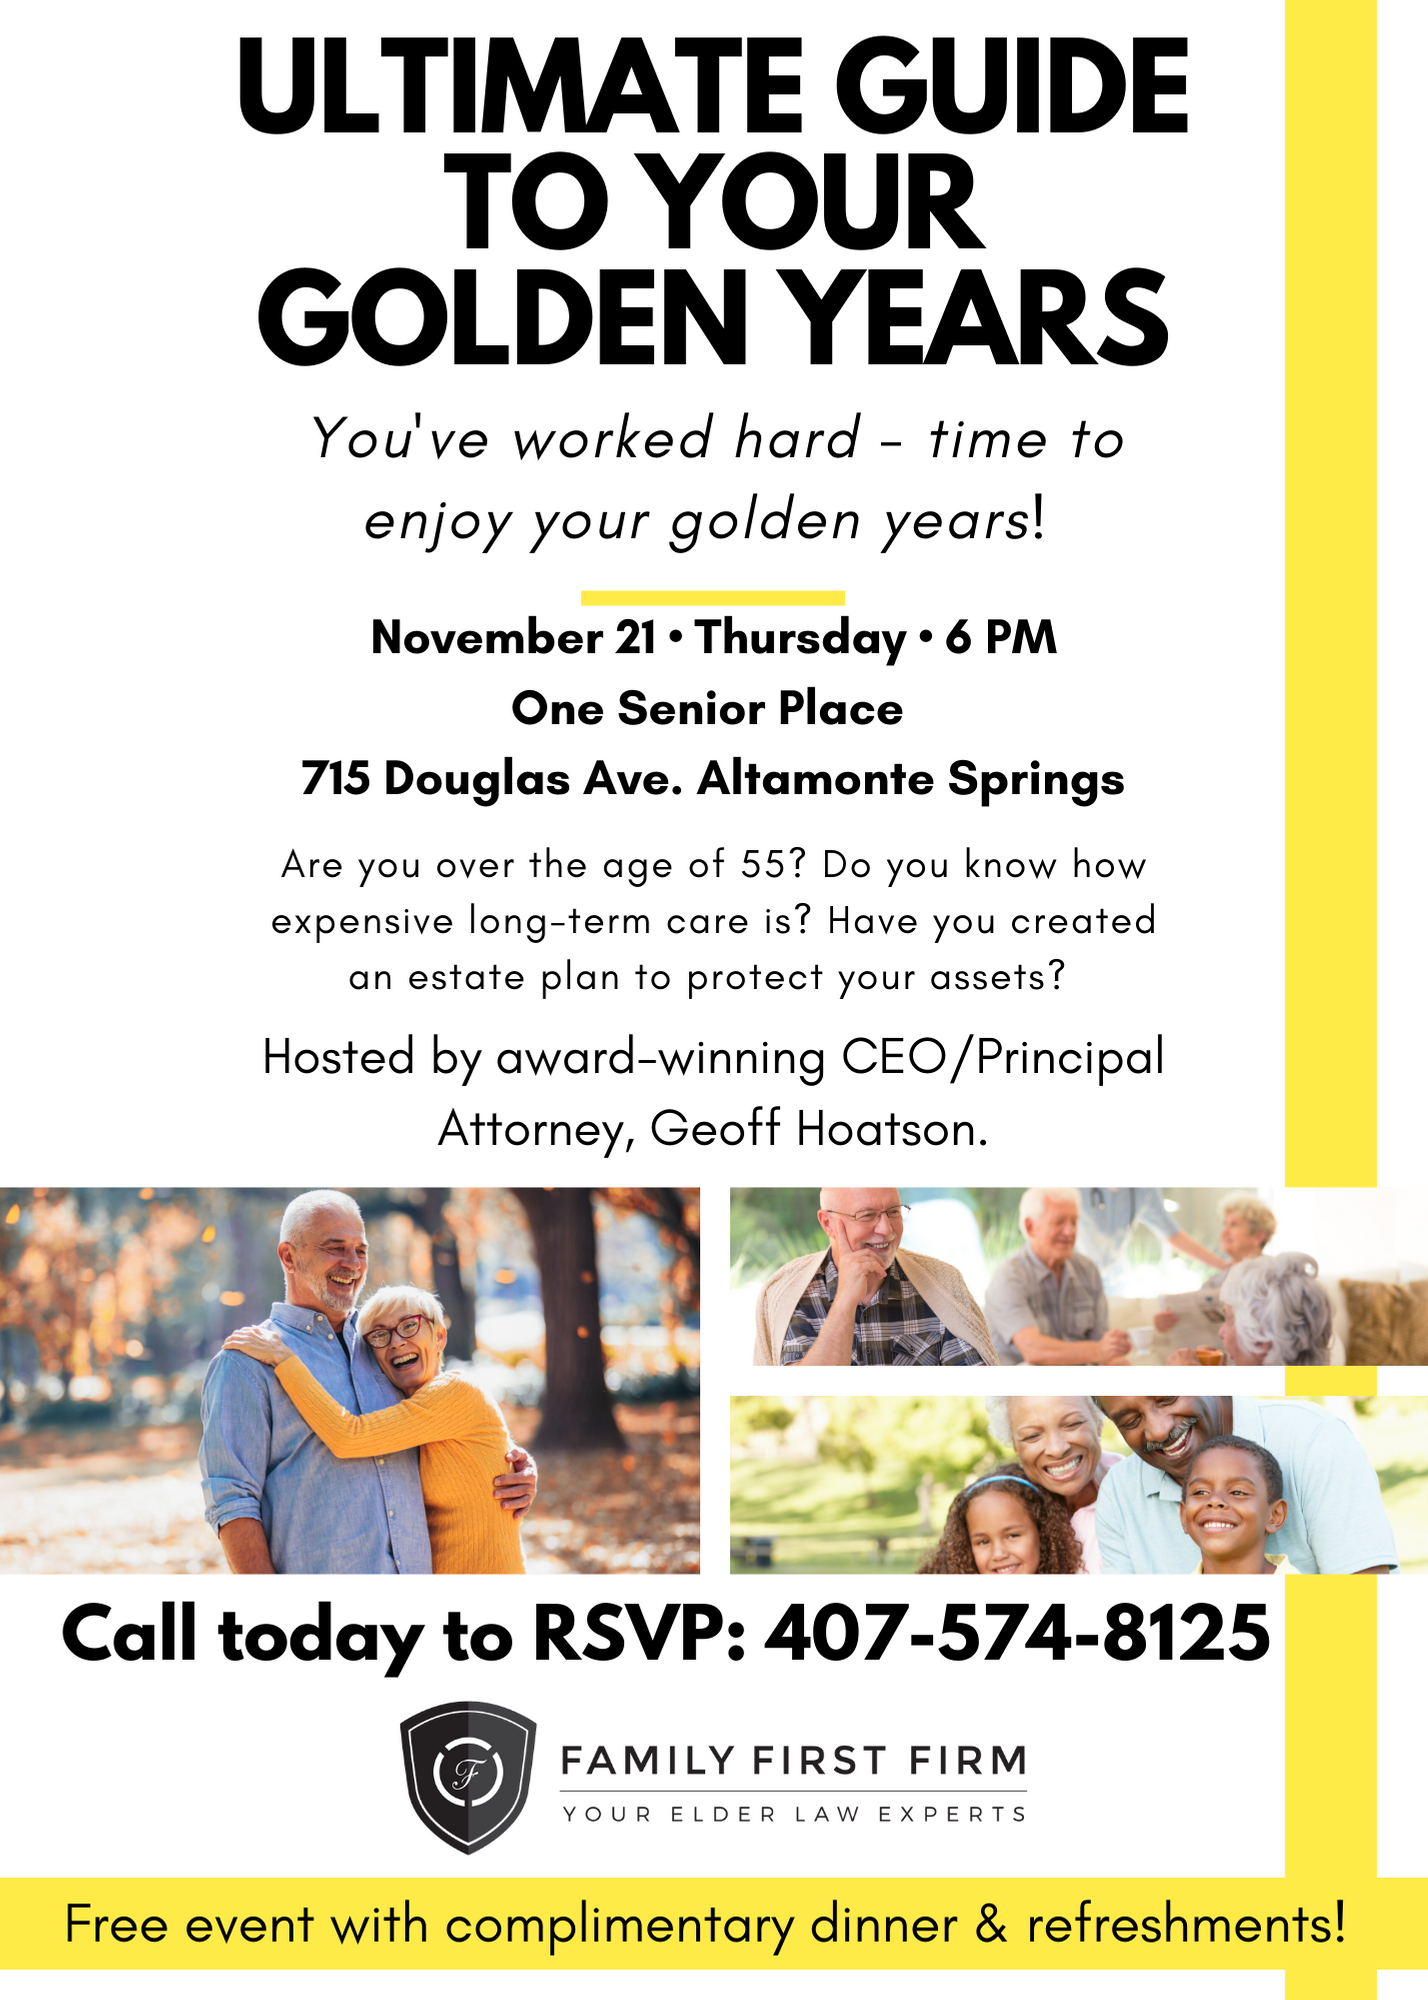 The Ultimate Guide to Your Golden Years